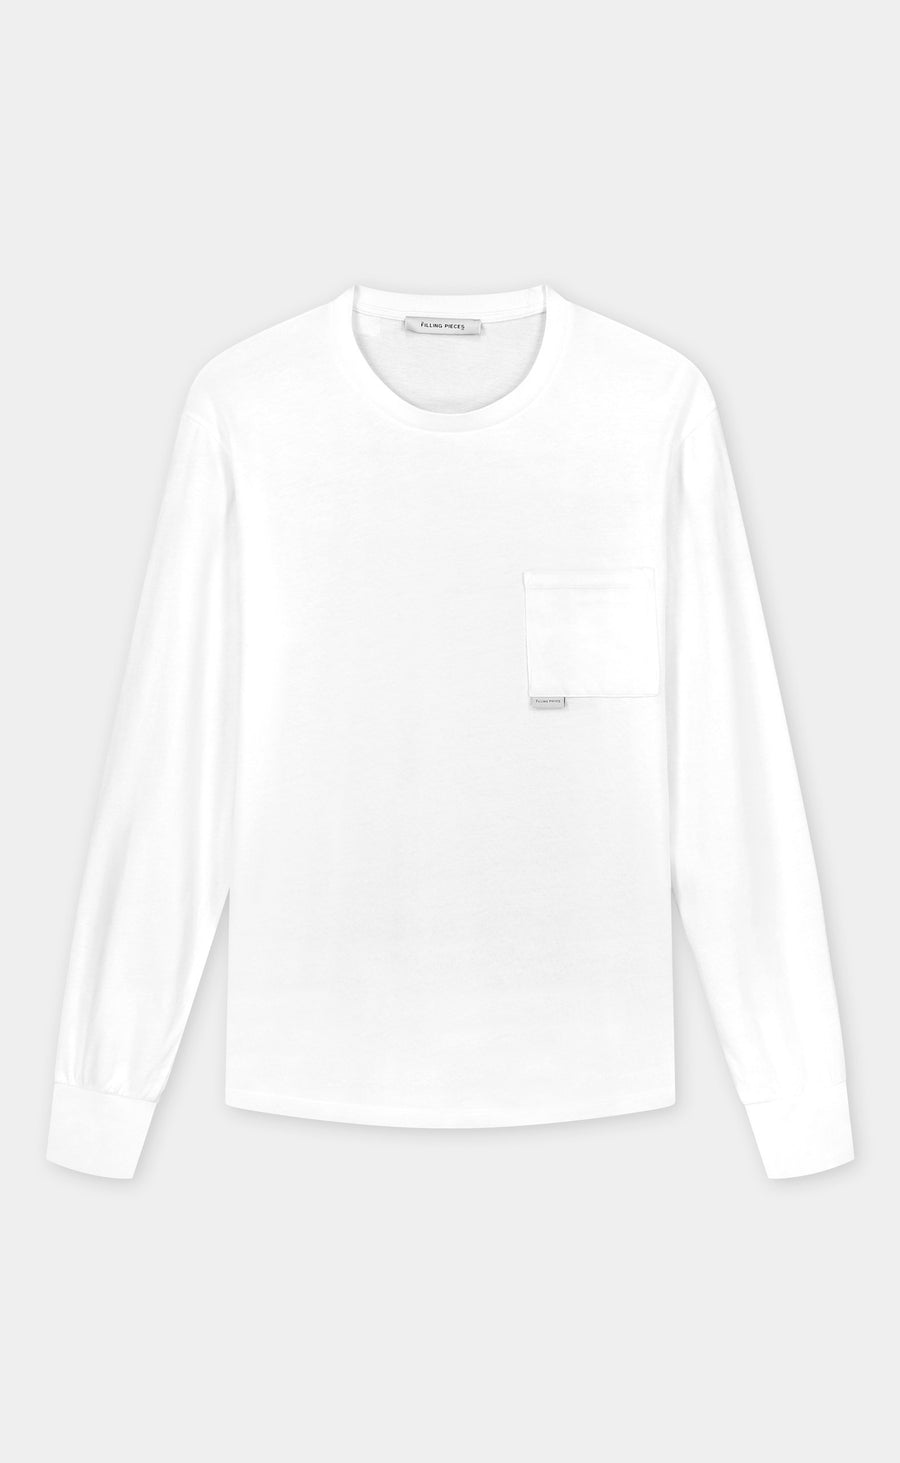 Pocket Longsleeve White - men